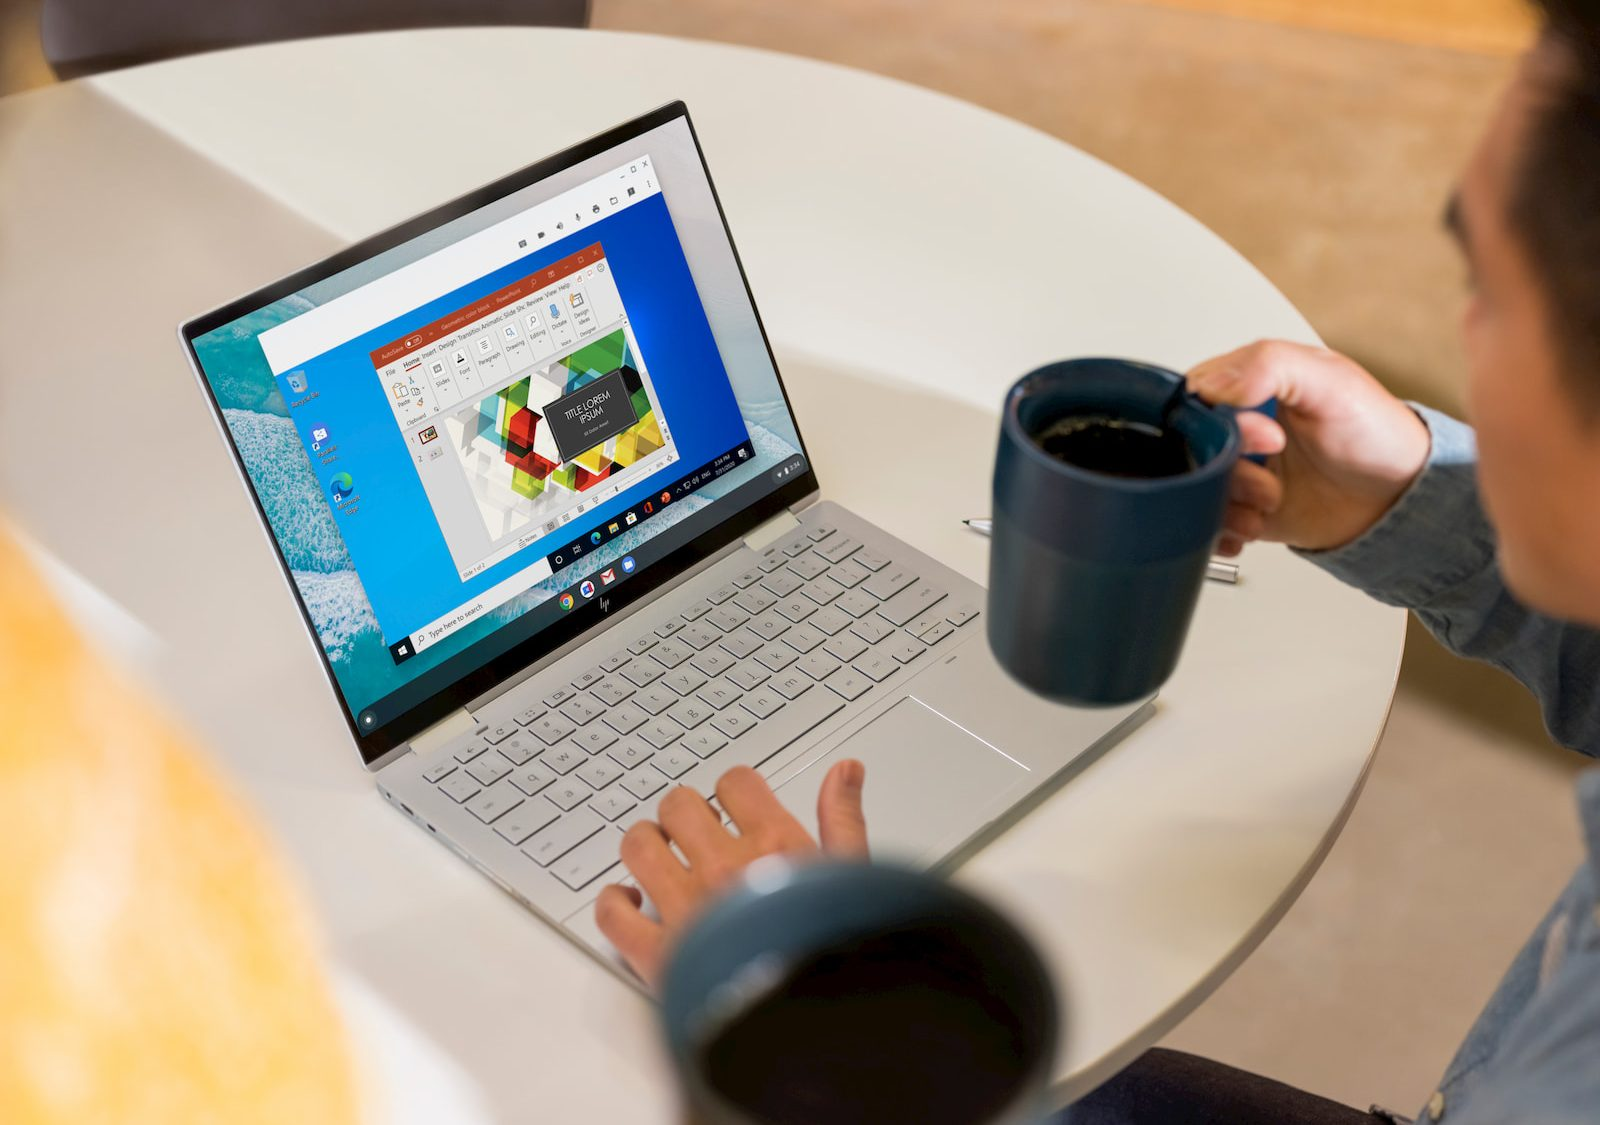 HP announces Parallels Desktop to bring Windows to Enterprise Chromebooks